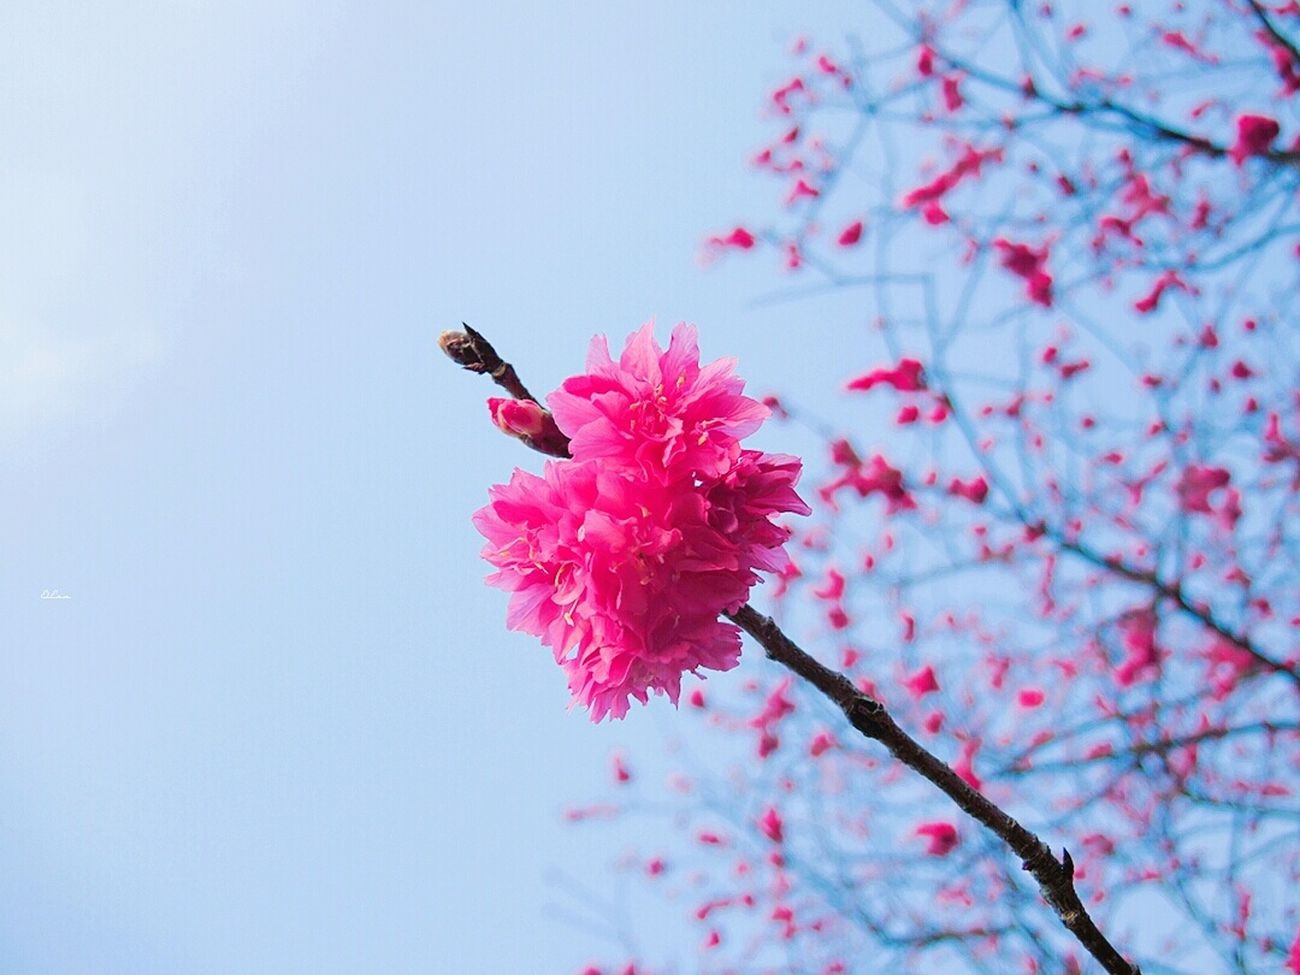 Red Nature Flower One Animal Animal Themes Fragility Beauty In Nature Growth Pink Color Freshness Outdoors Close-up Day No People Plum Blossom Insect Pollination Flower Head Cheeryblossom Spring Cherry Blossoms Check This Out Taiwan Iseetaiwan